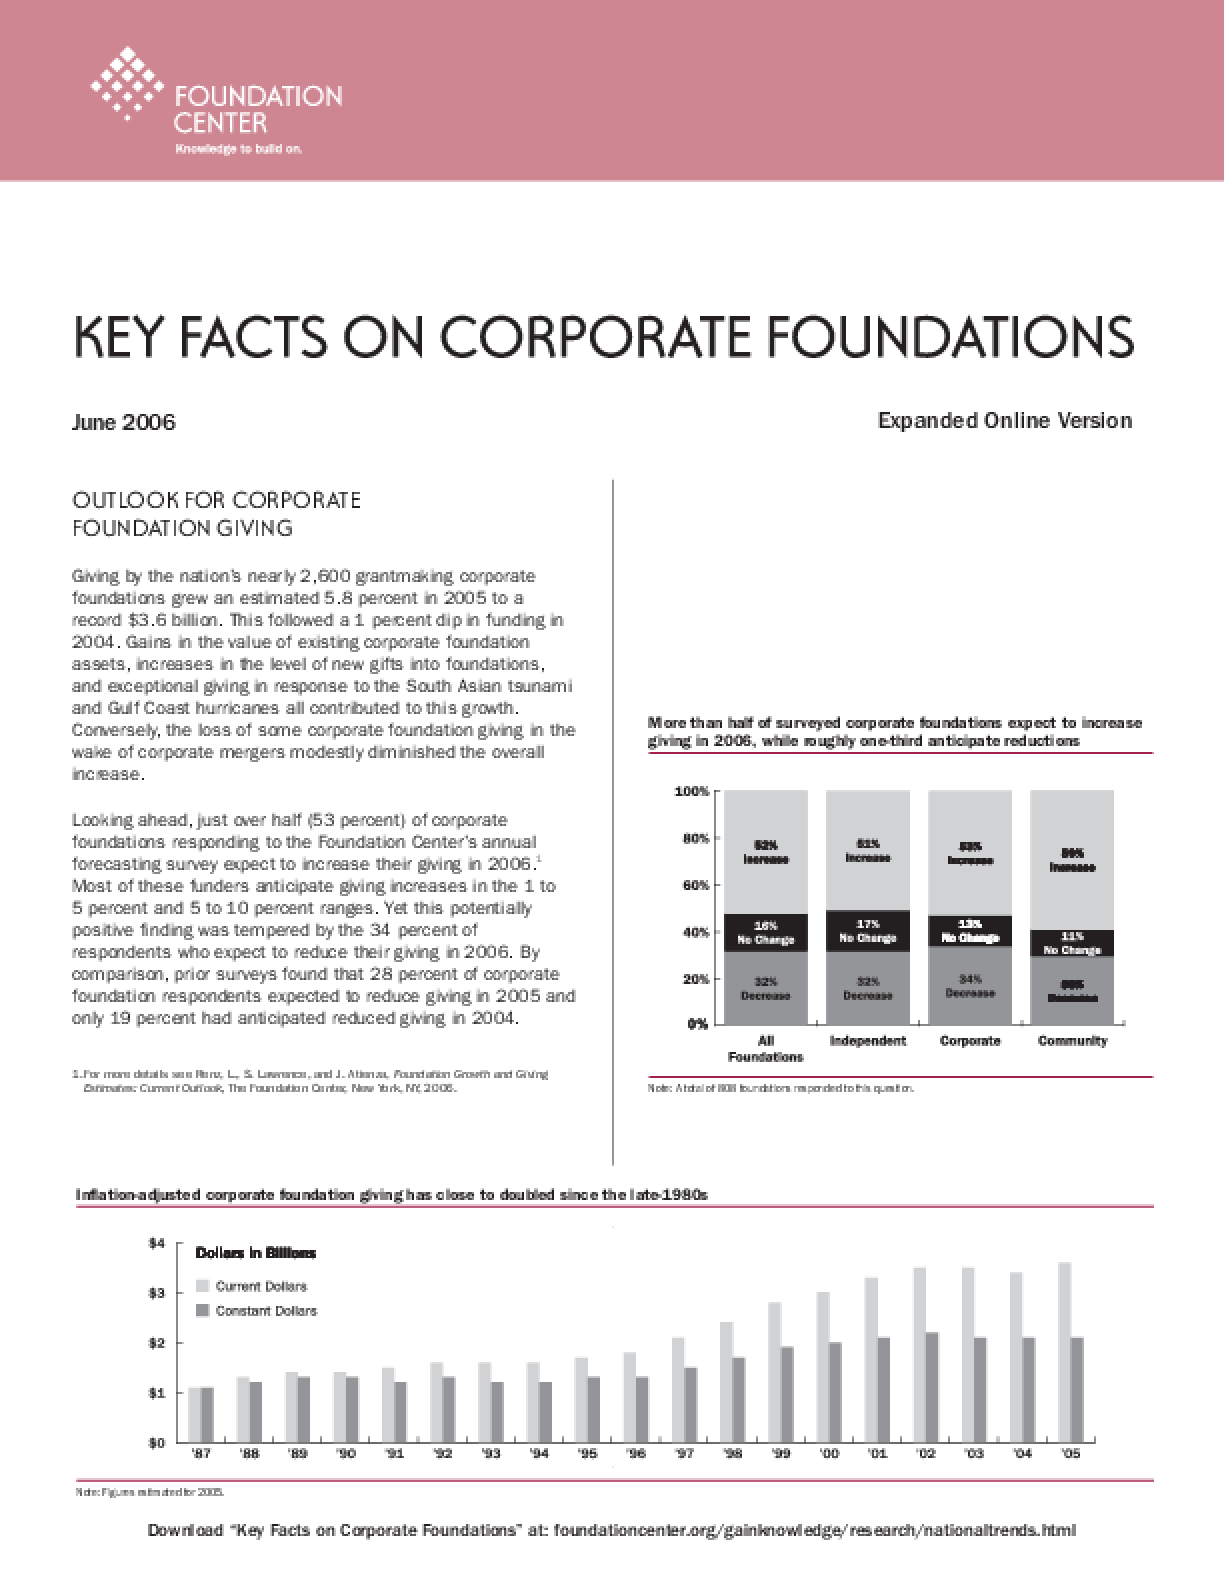 Key Facts on Corporate Foundations 2006